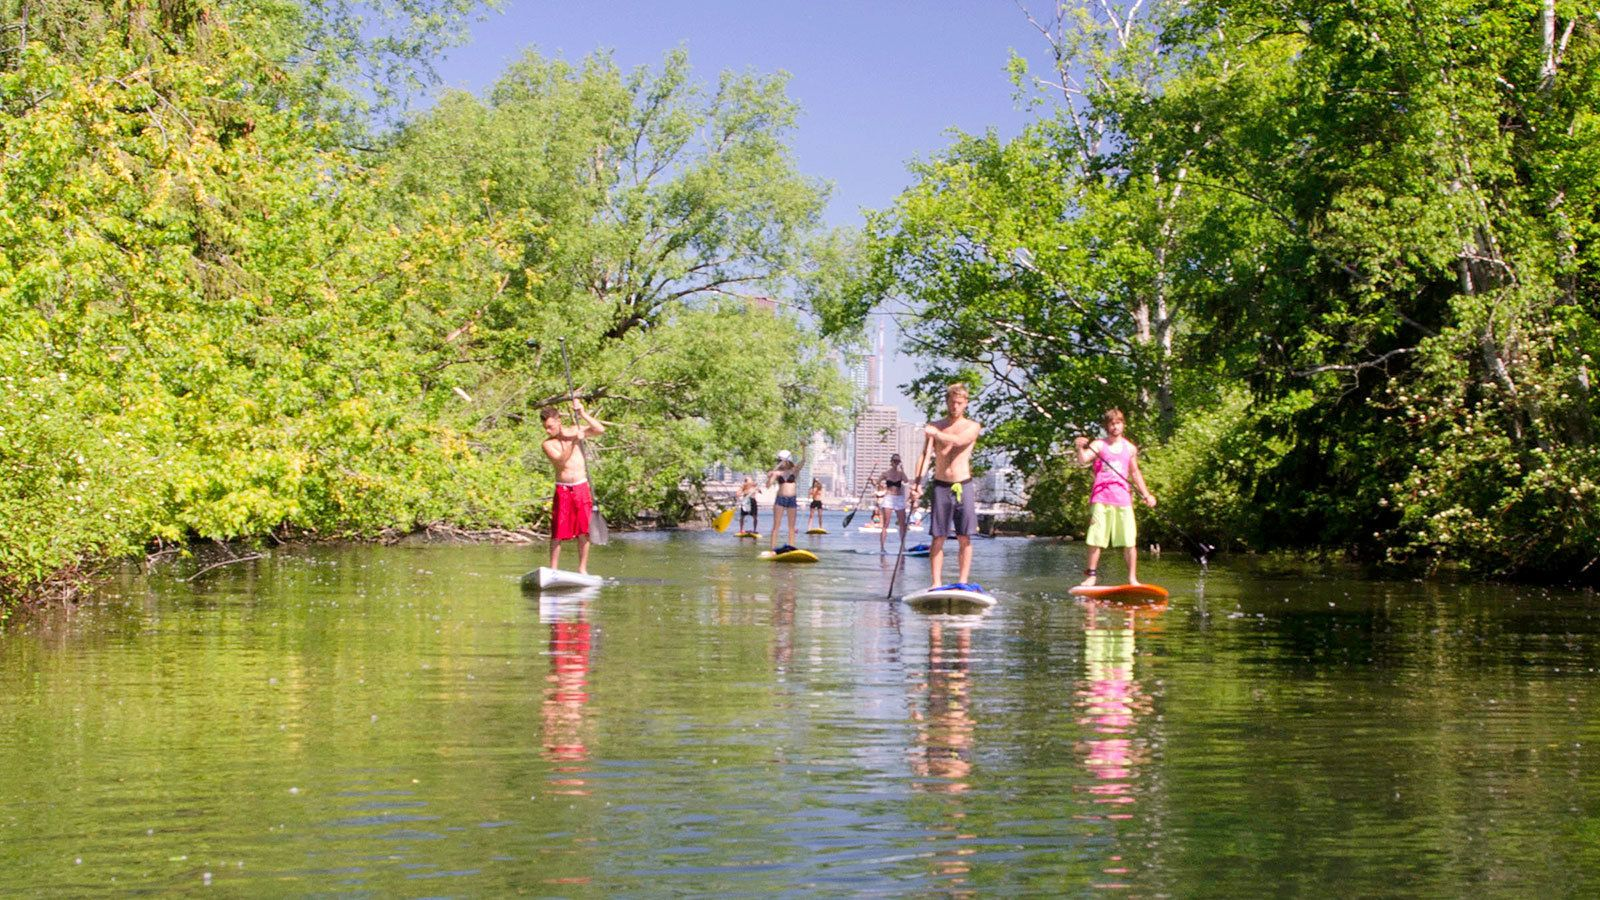 paddleboarders visiting the Toronto Island